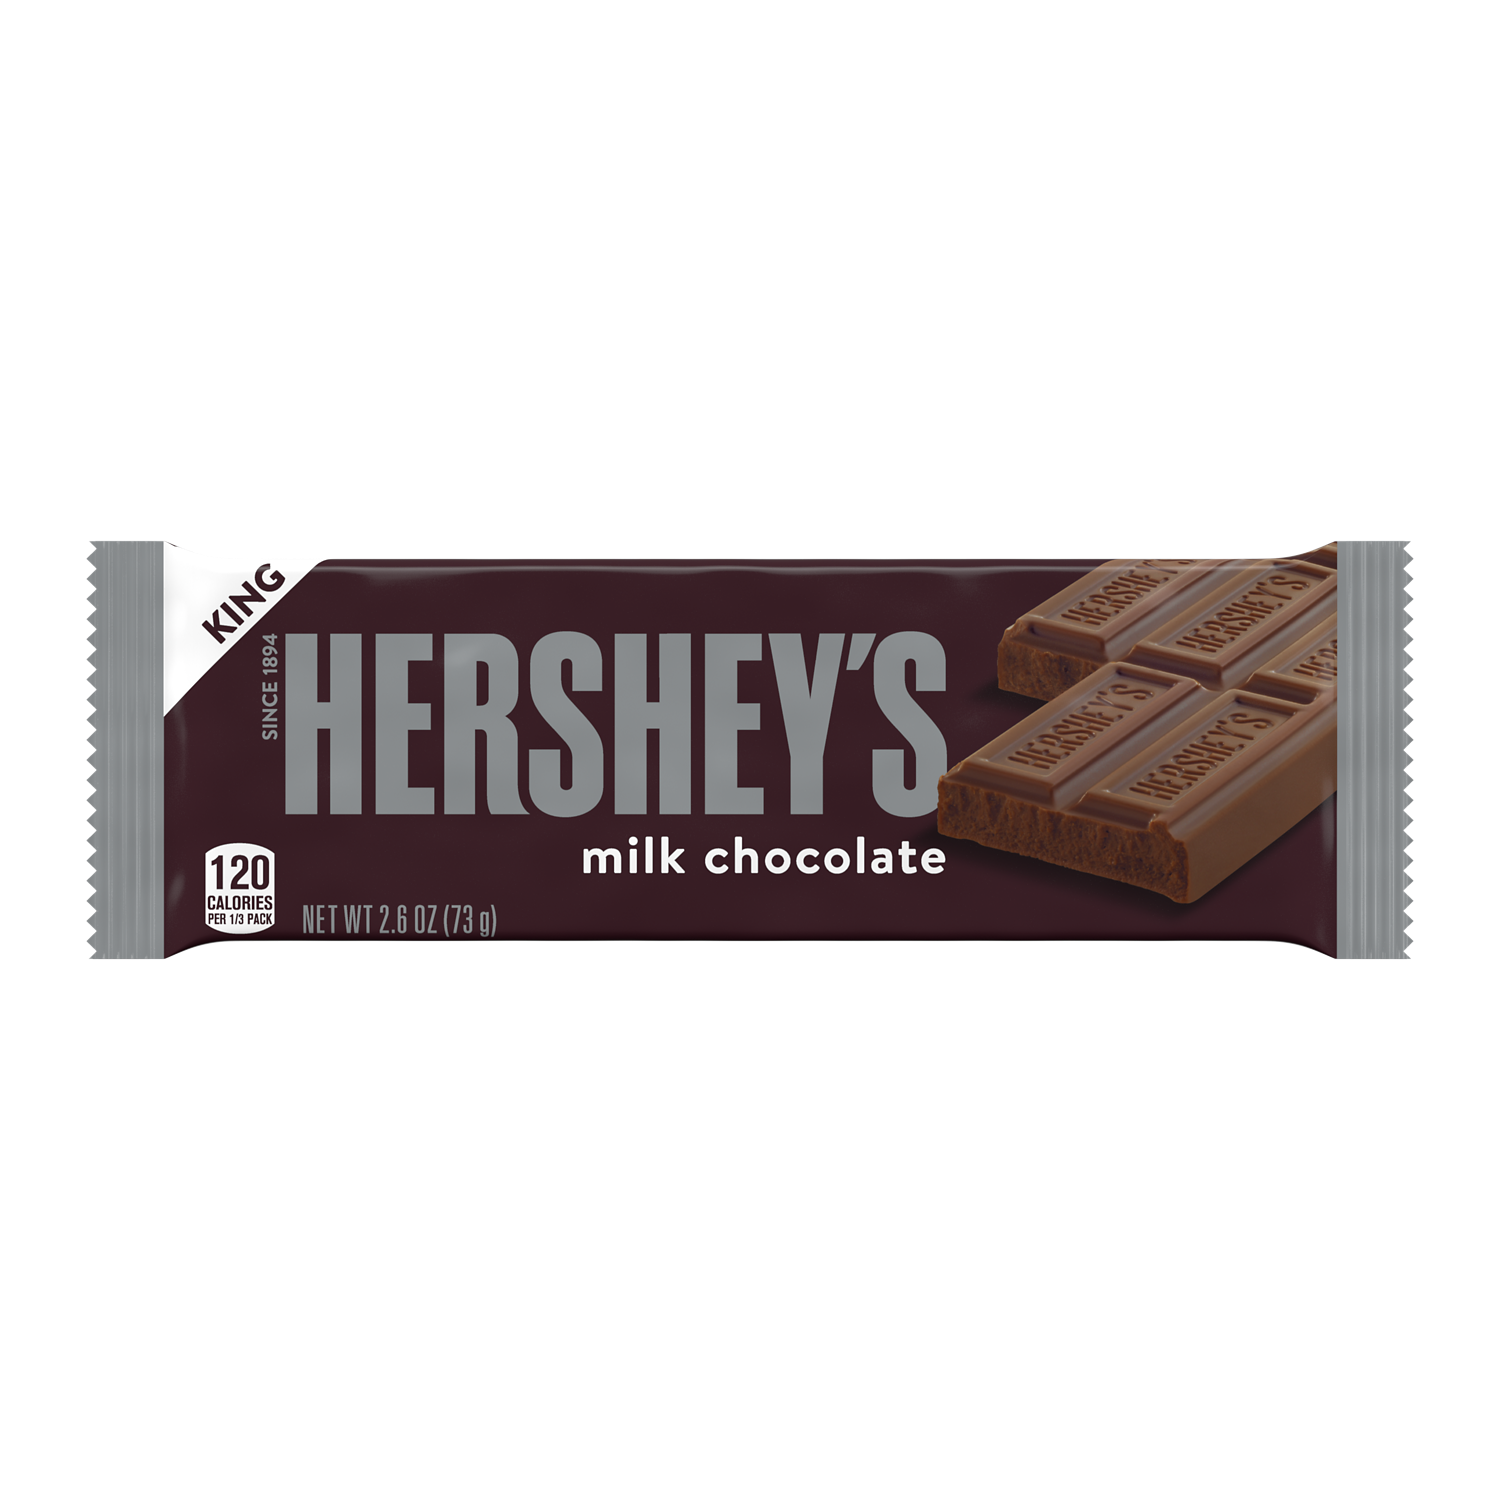 HERSHEY'S Milk Chocolate King Size Candy Bar, 2.6 oz - Front of Package